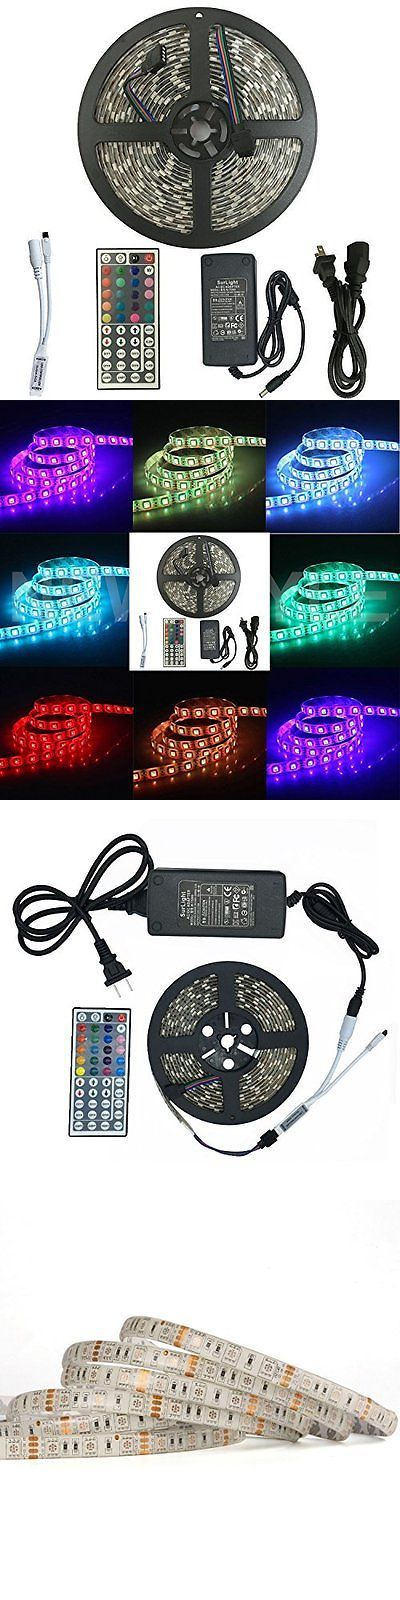 Other Handcrafted Home Accents 160657: Waterproof 300Led Flexible Color Changing Light Strip Kit For Indoor Use 16.4Ft -> BUY IT NOW ONLY: $34.95 on eBay!